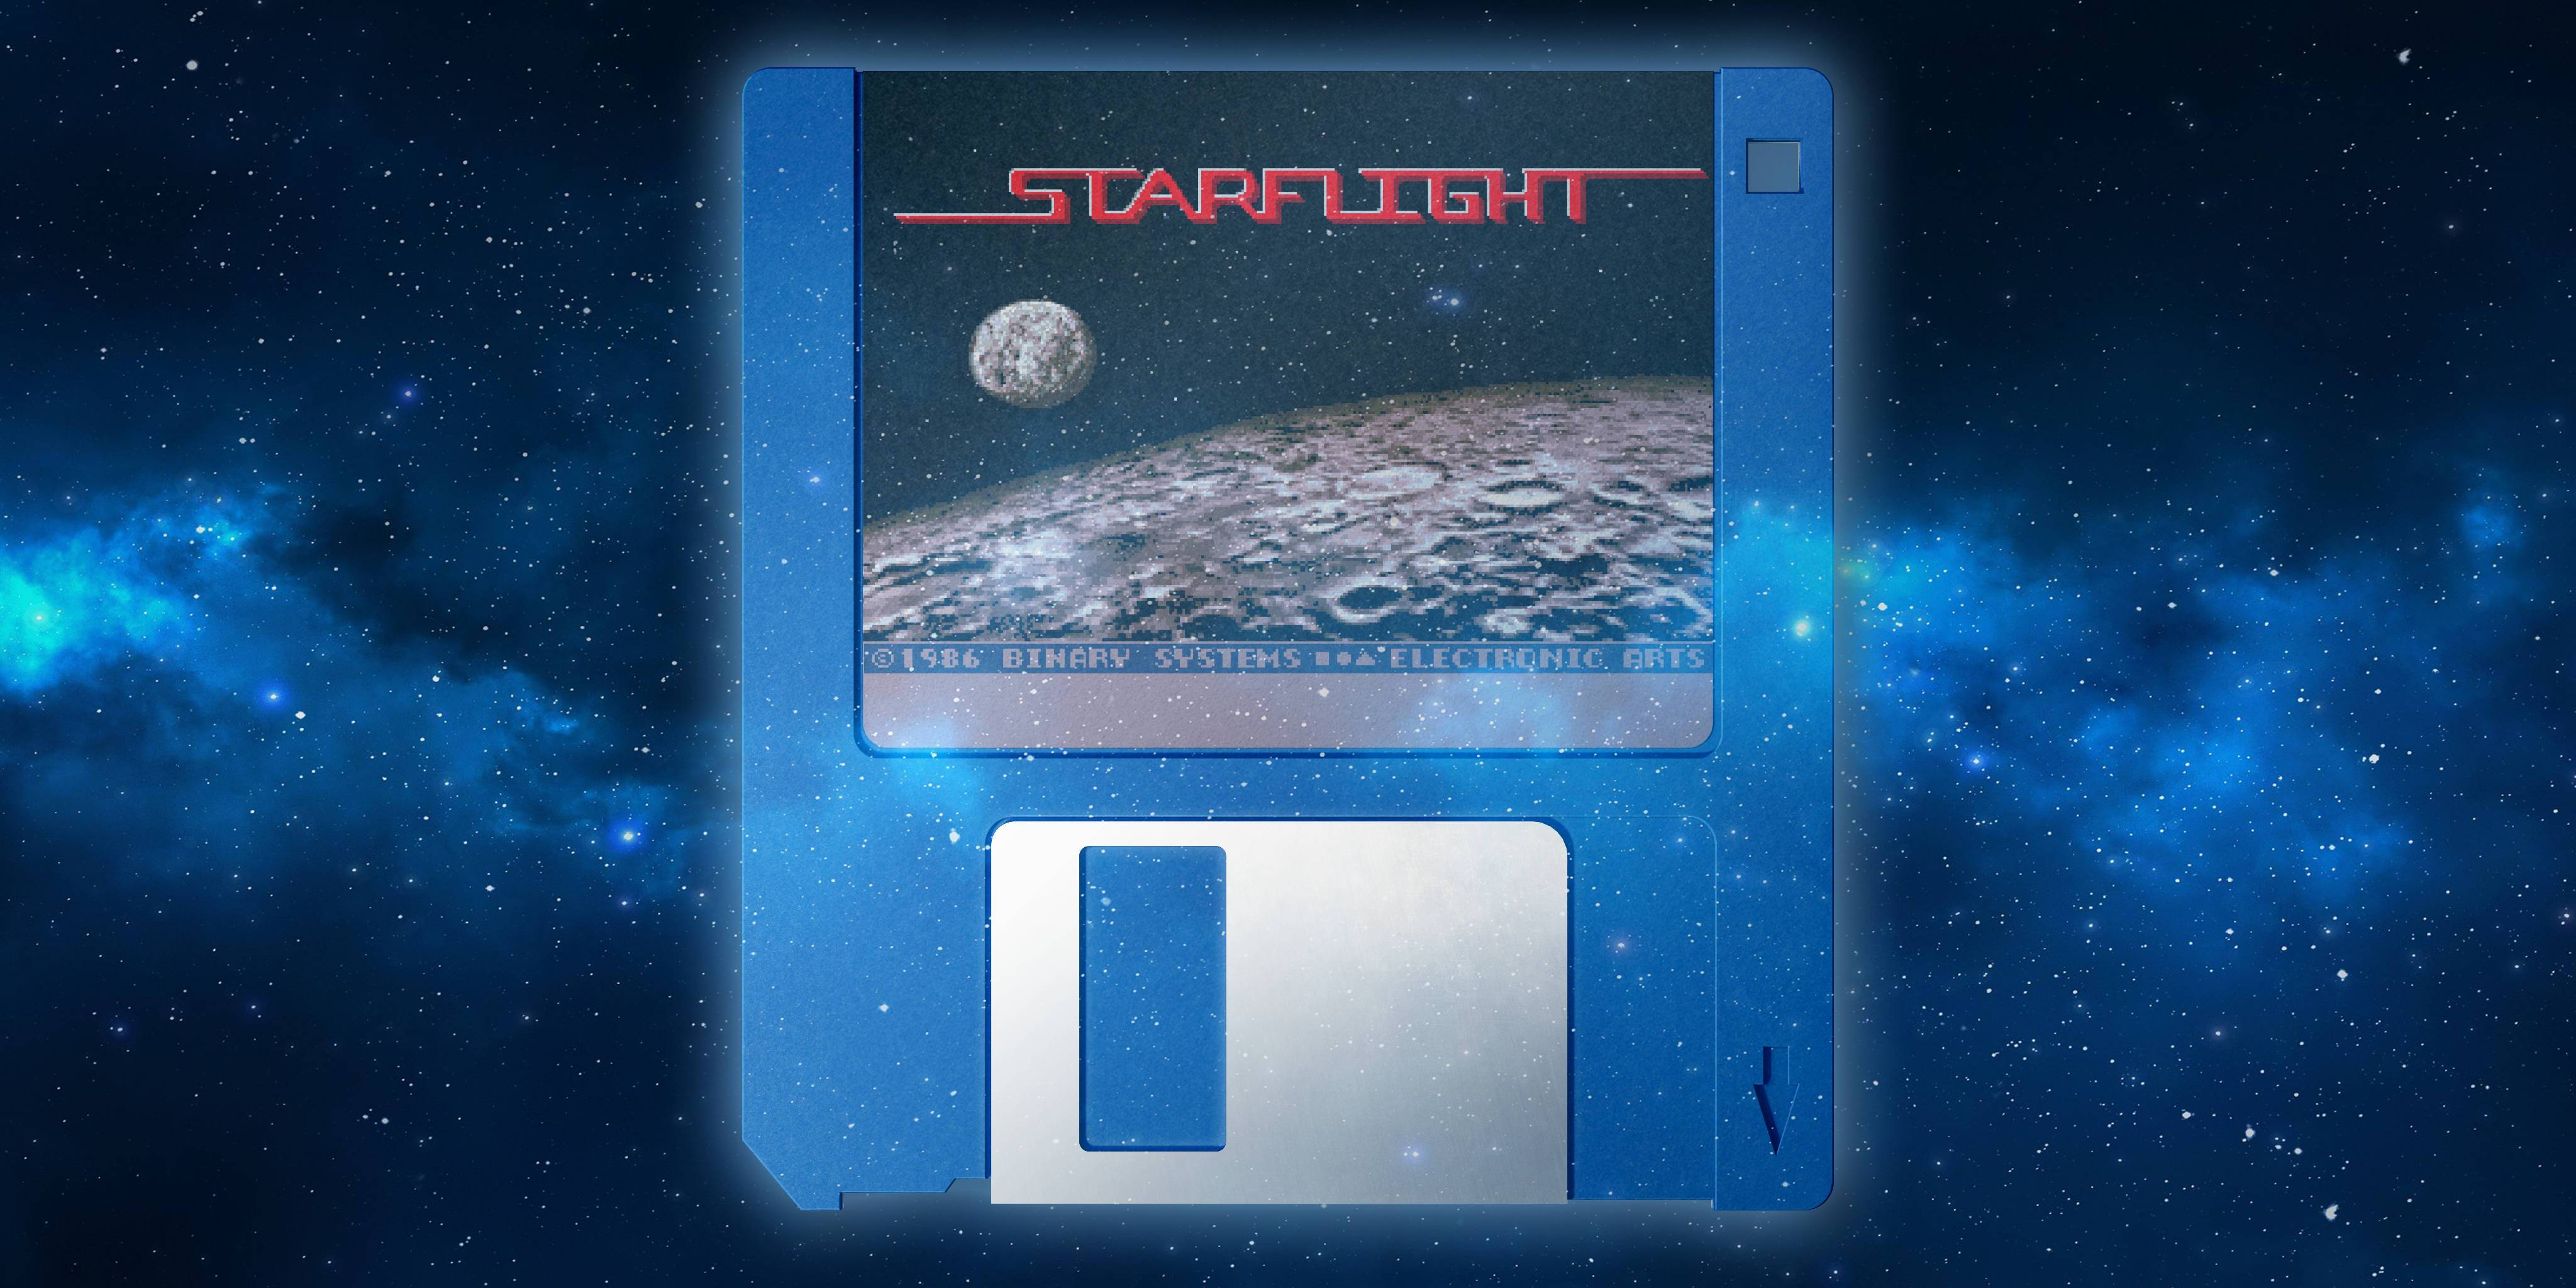 Starflight 1 (1986) from Binary Systems, Electronic Arts<em>© Electronic Arts, modified by Krischan</em>